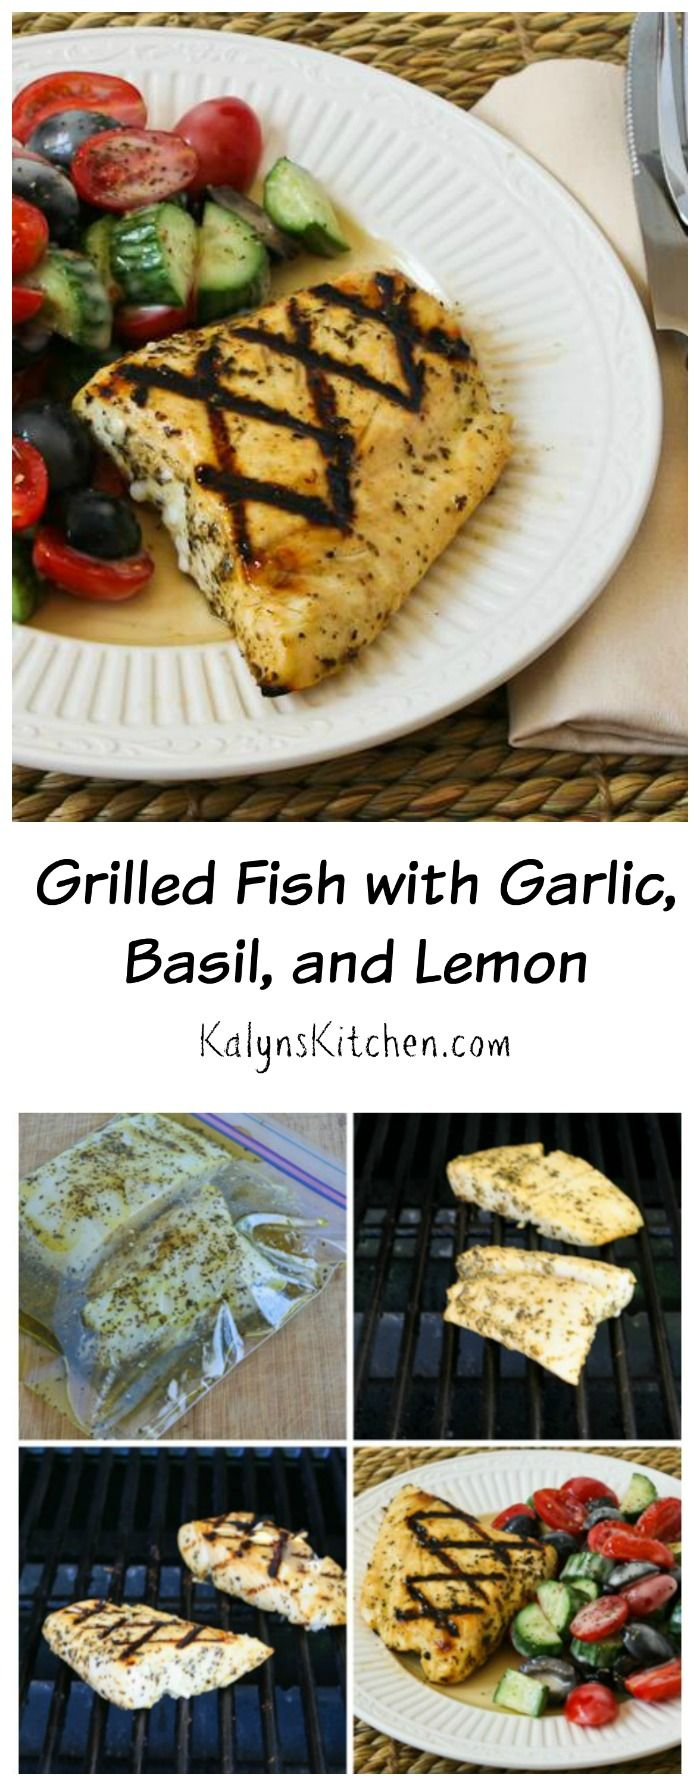 This delicious marinade for Grilled Fish with Garlic, Basil, and Lemon can be used on halibut, tilapia, mahi mahi, or any firm white fish, and this is a perfect dish for a summer party! [from KalynsKitchen.com] #LowCarb #GlutenFree #Paleo